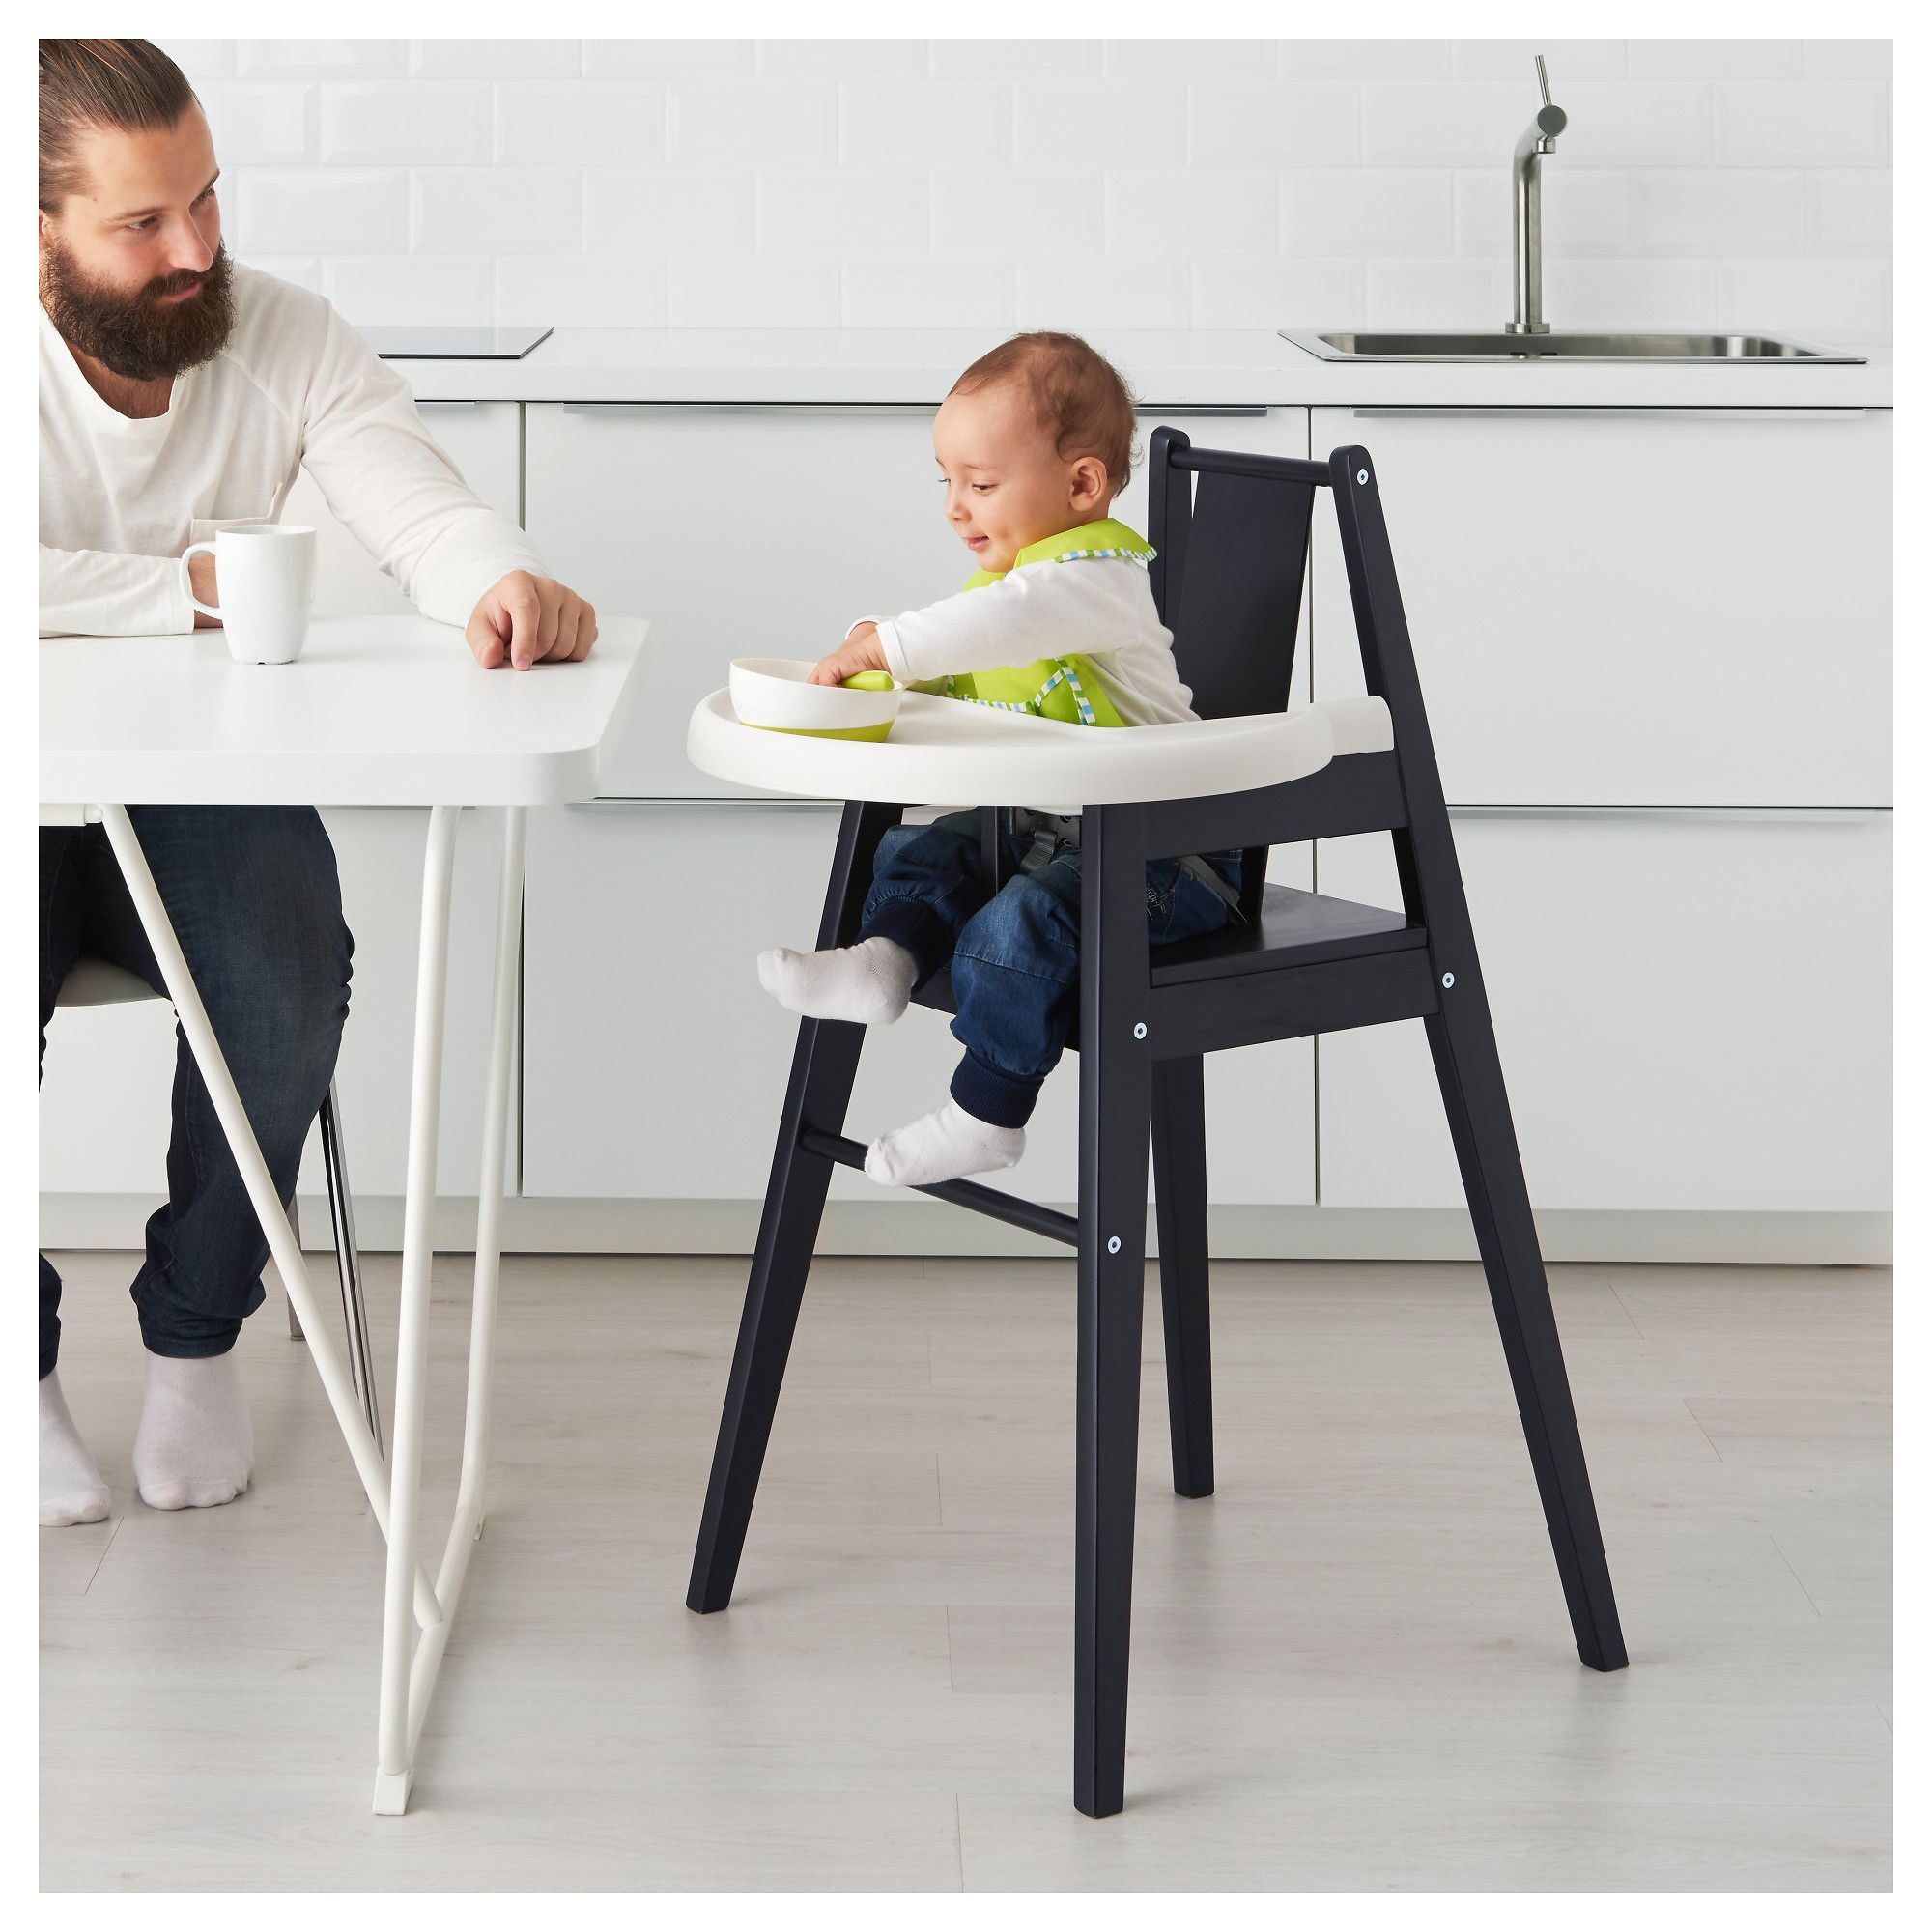 BLÅMES Highchair with tray black Ikea, Chair, Toddler